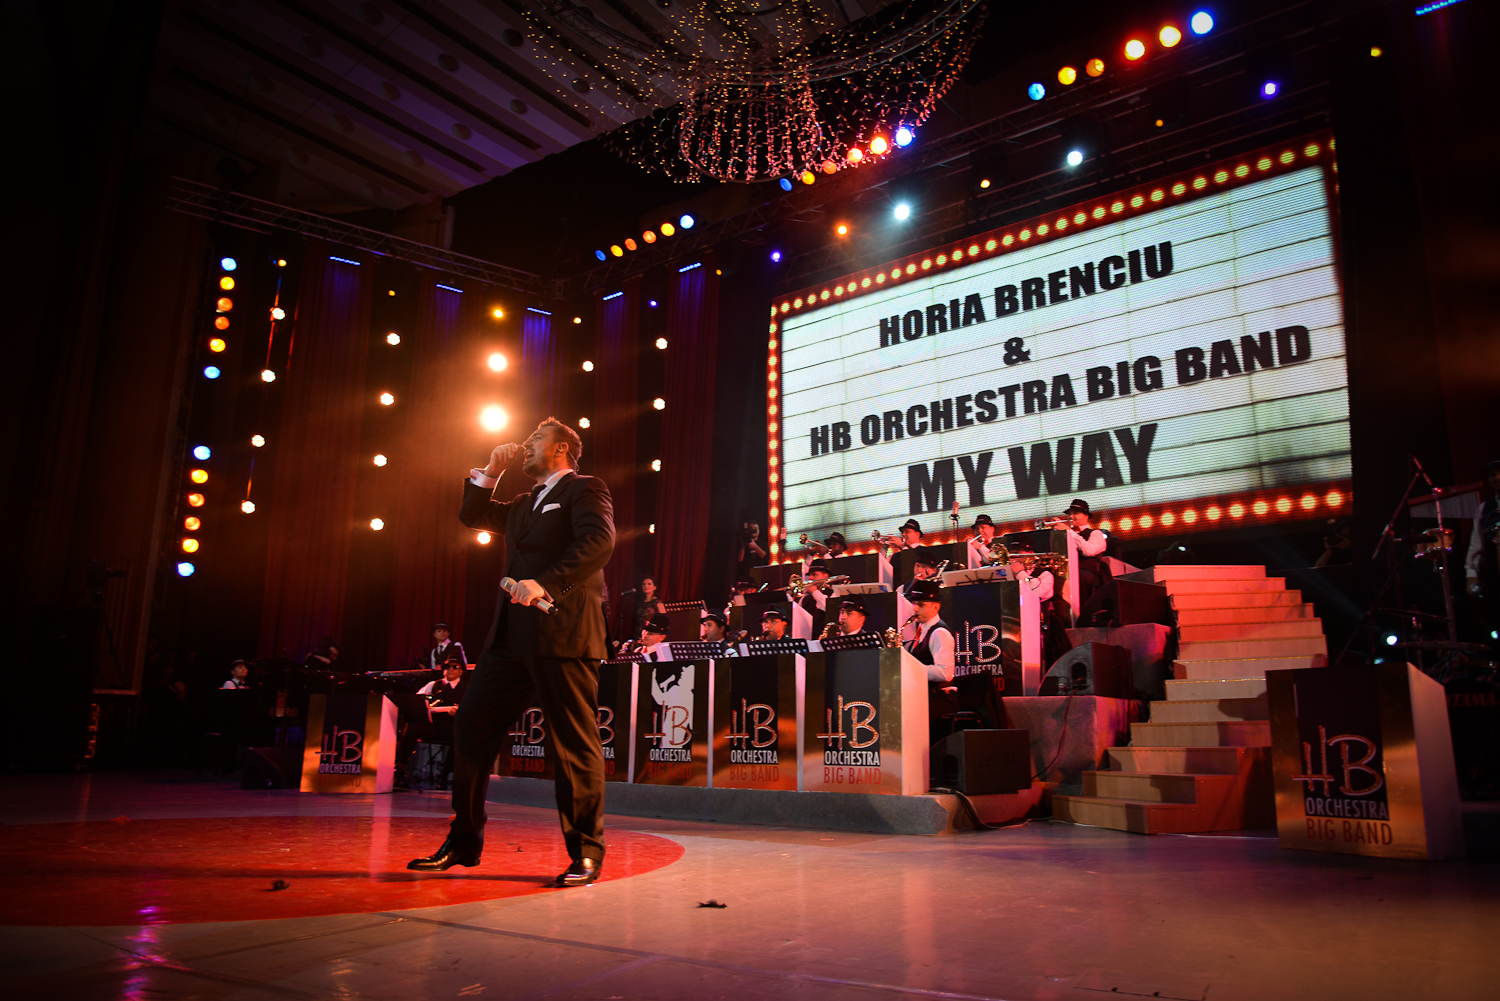 Concert Horia Brenciu - My Way